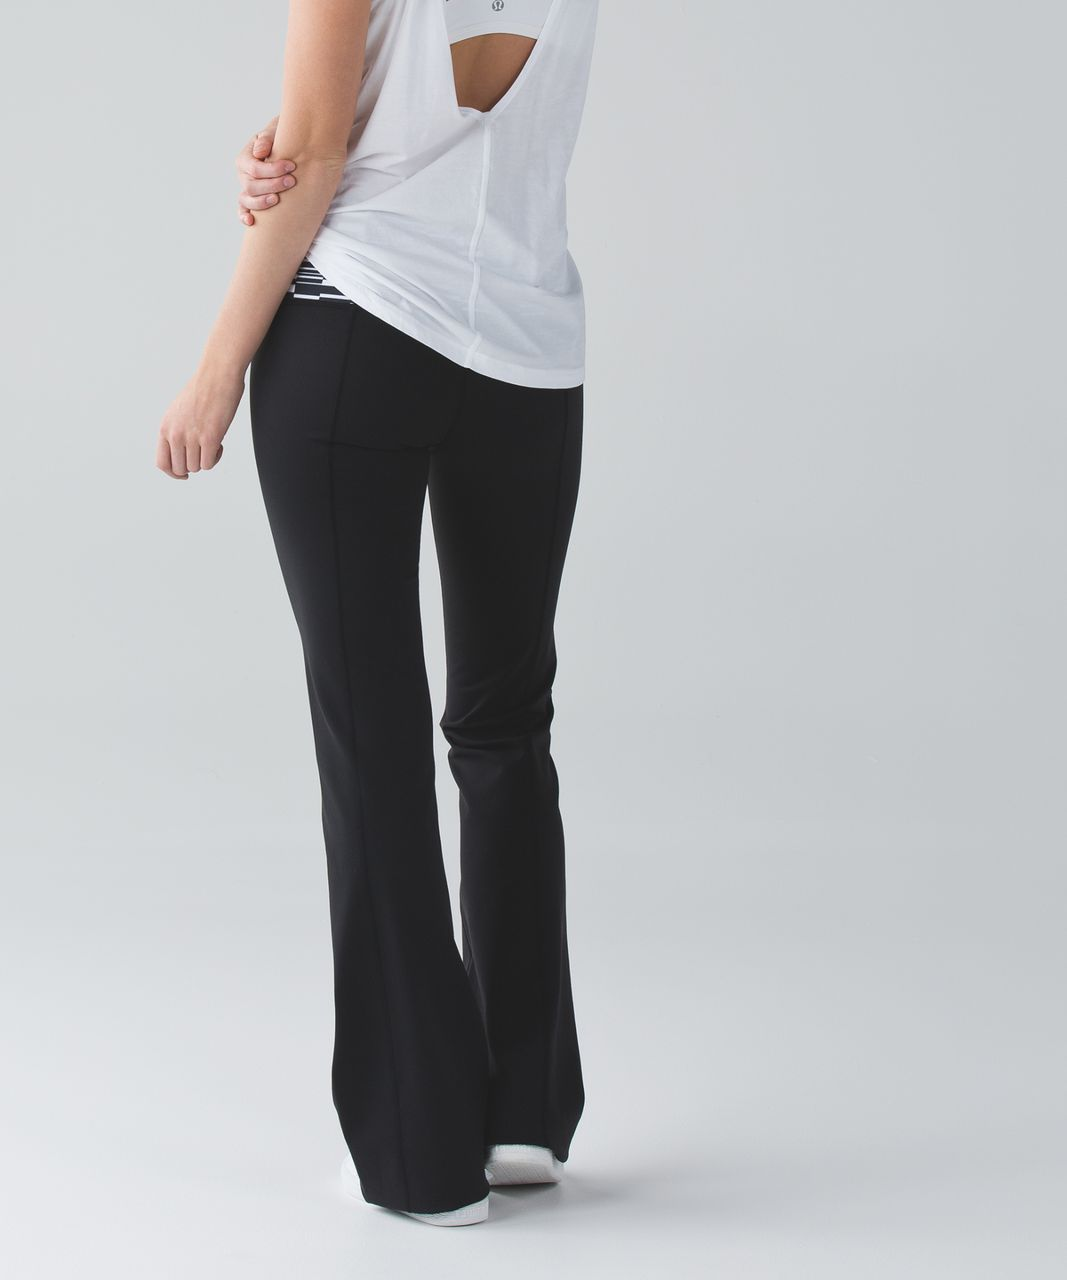 Lululemon Groove Pant III (Tall) - Black / Ying Yang Stripe White Black